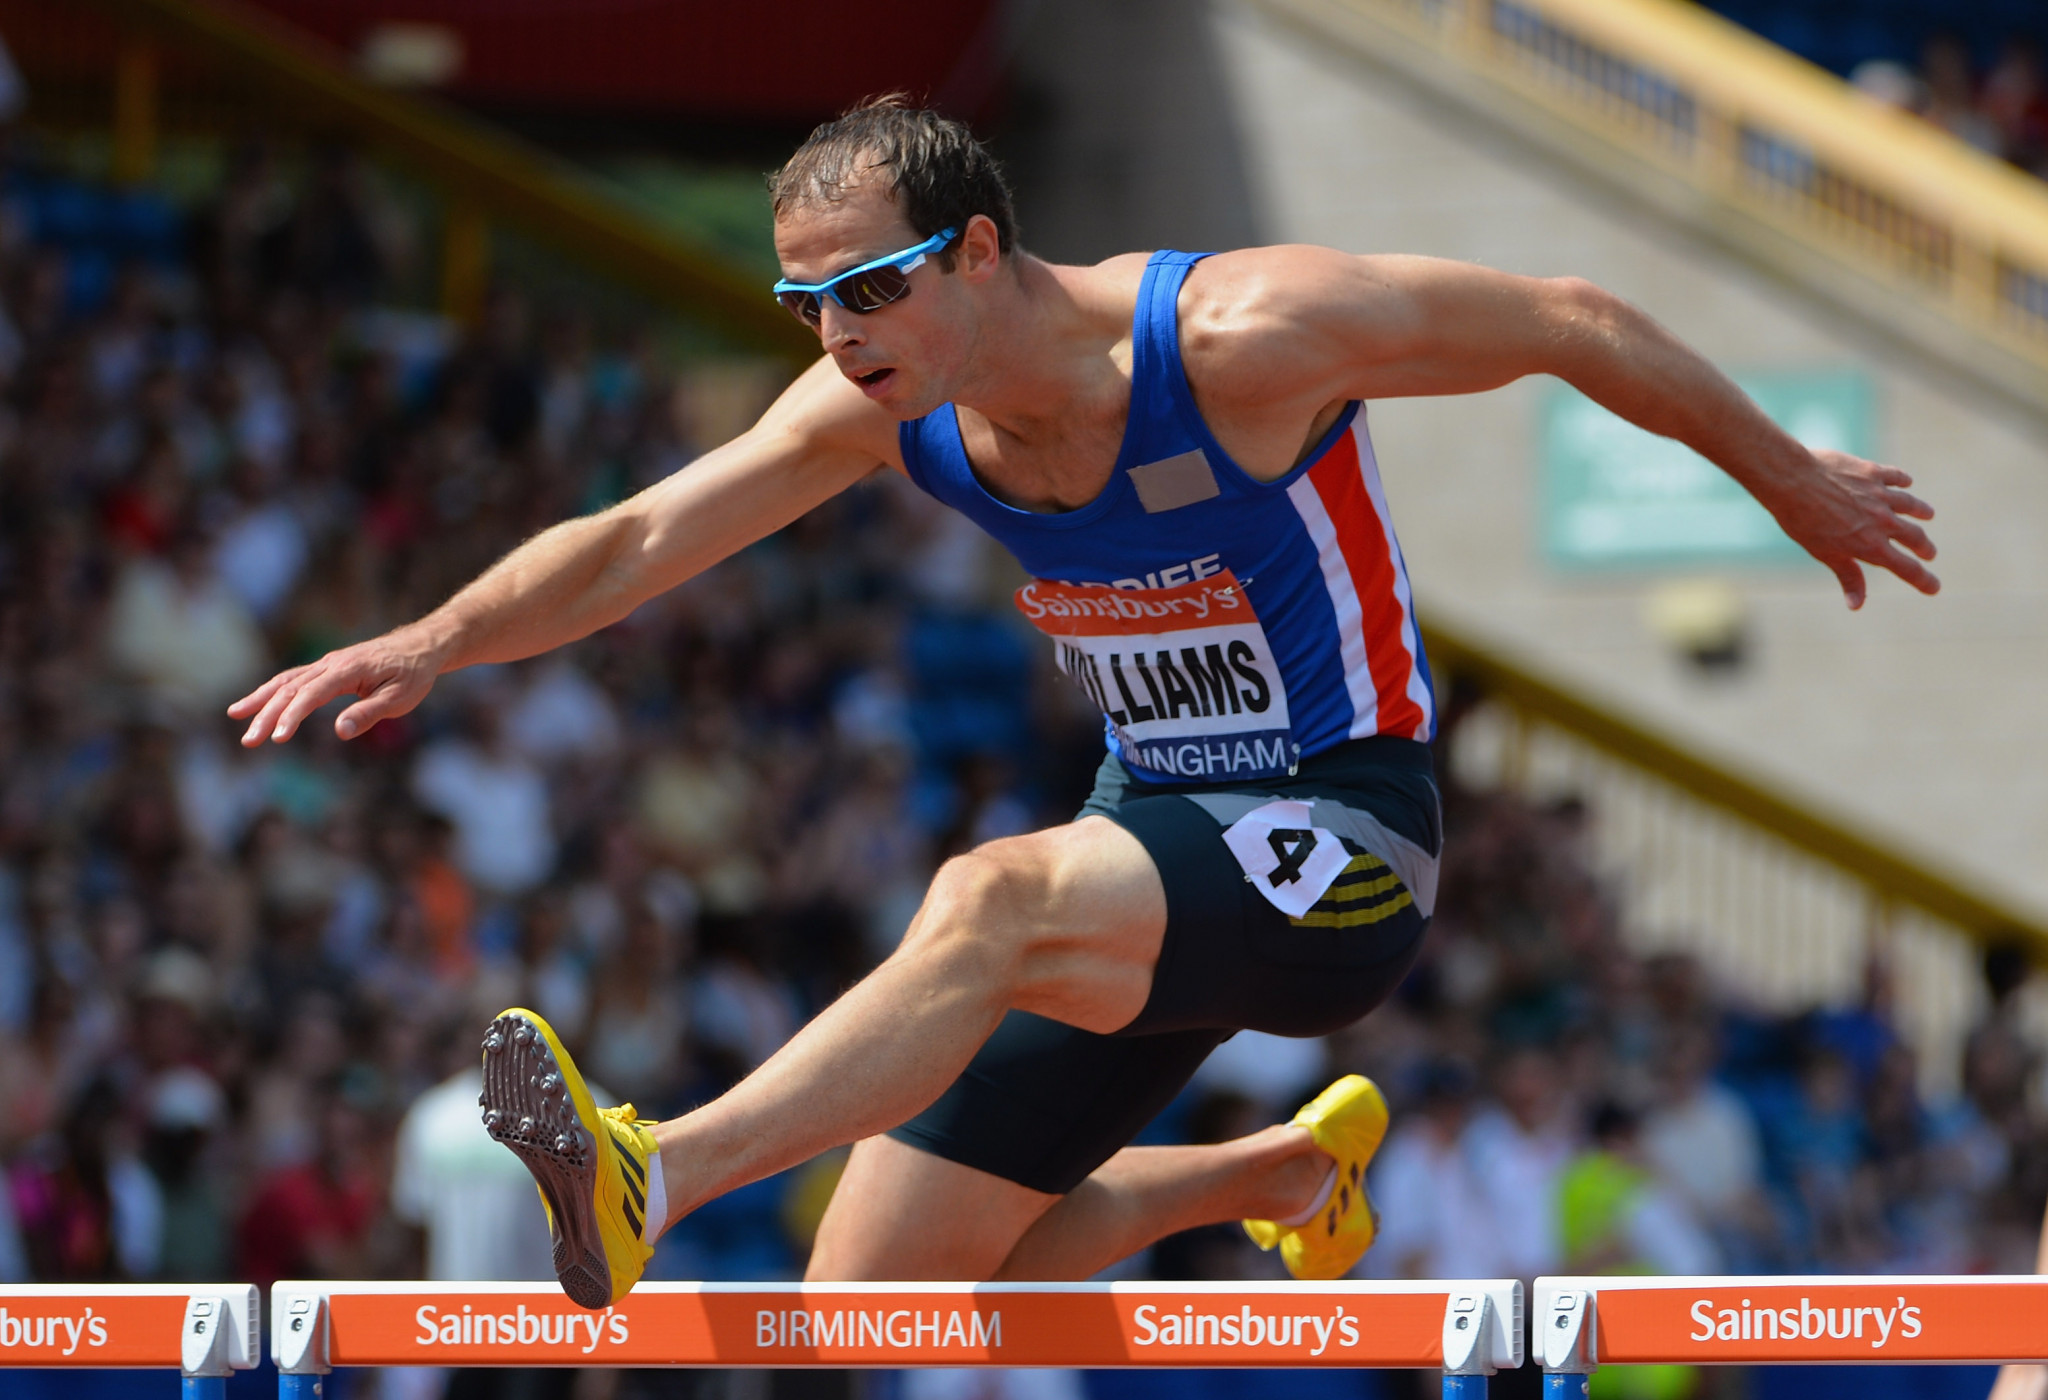 Rhys Williams was one of two British athletes involved in the case ©Getty Images